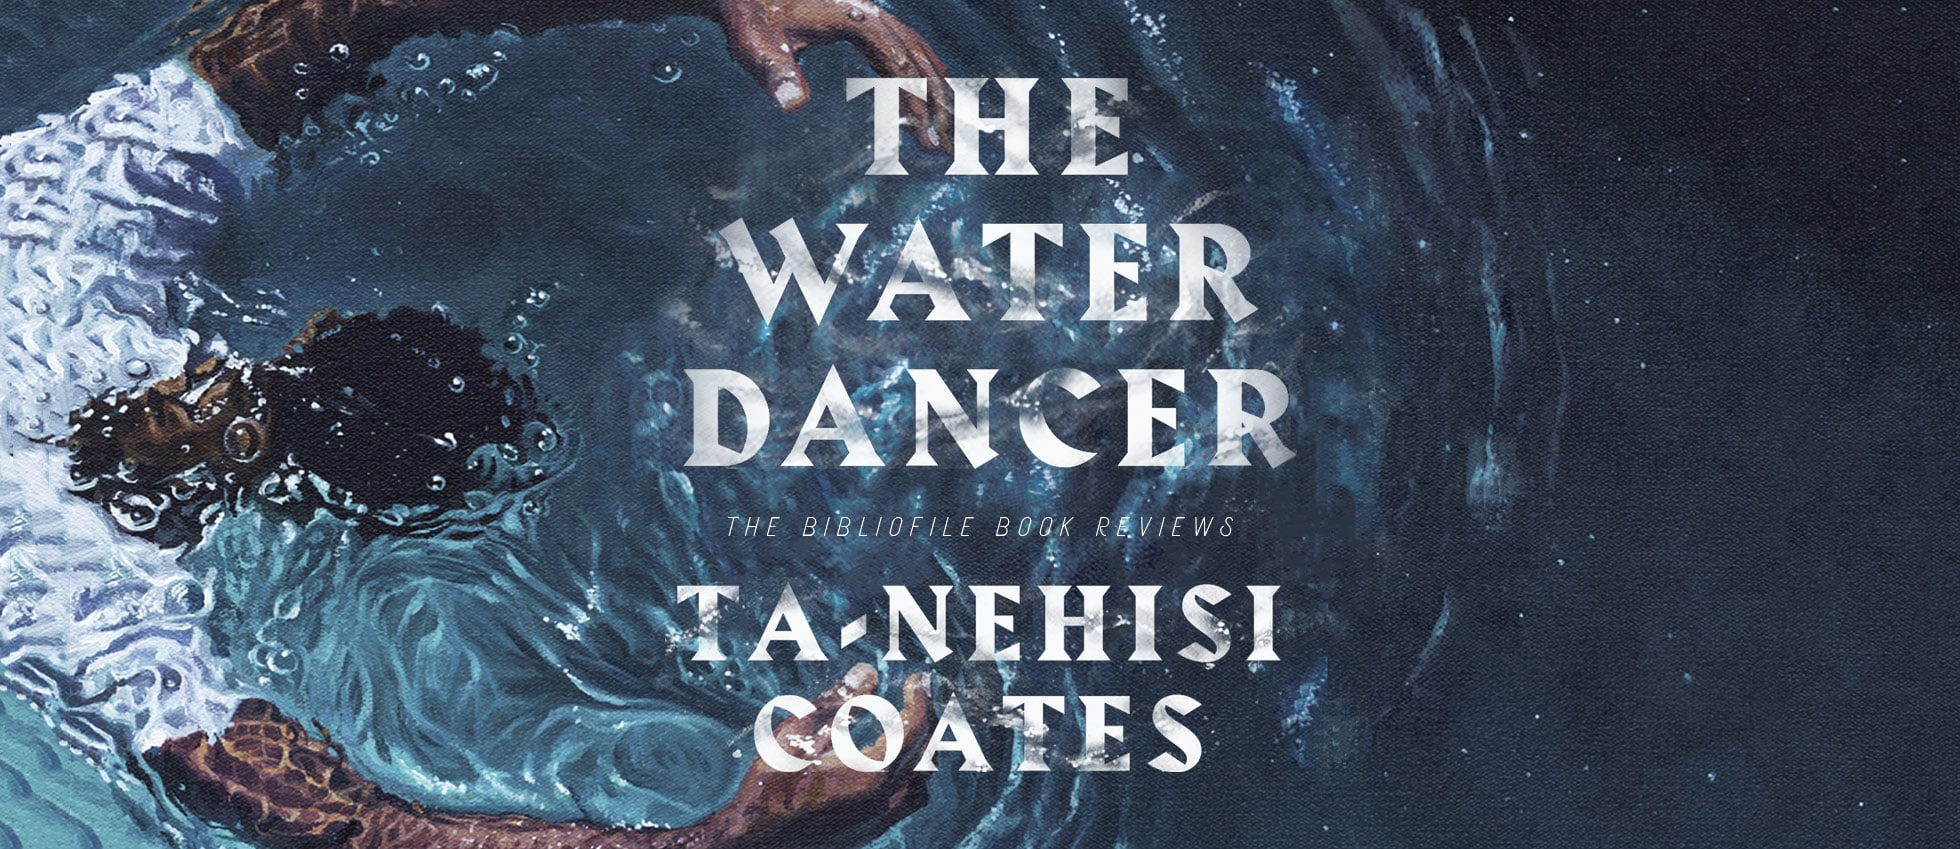 water dancer ta nehisi coates summary review